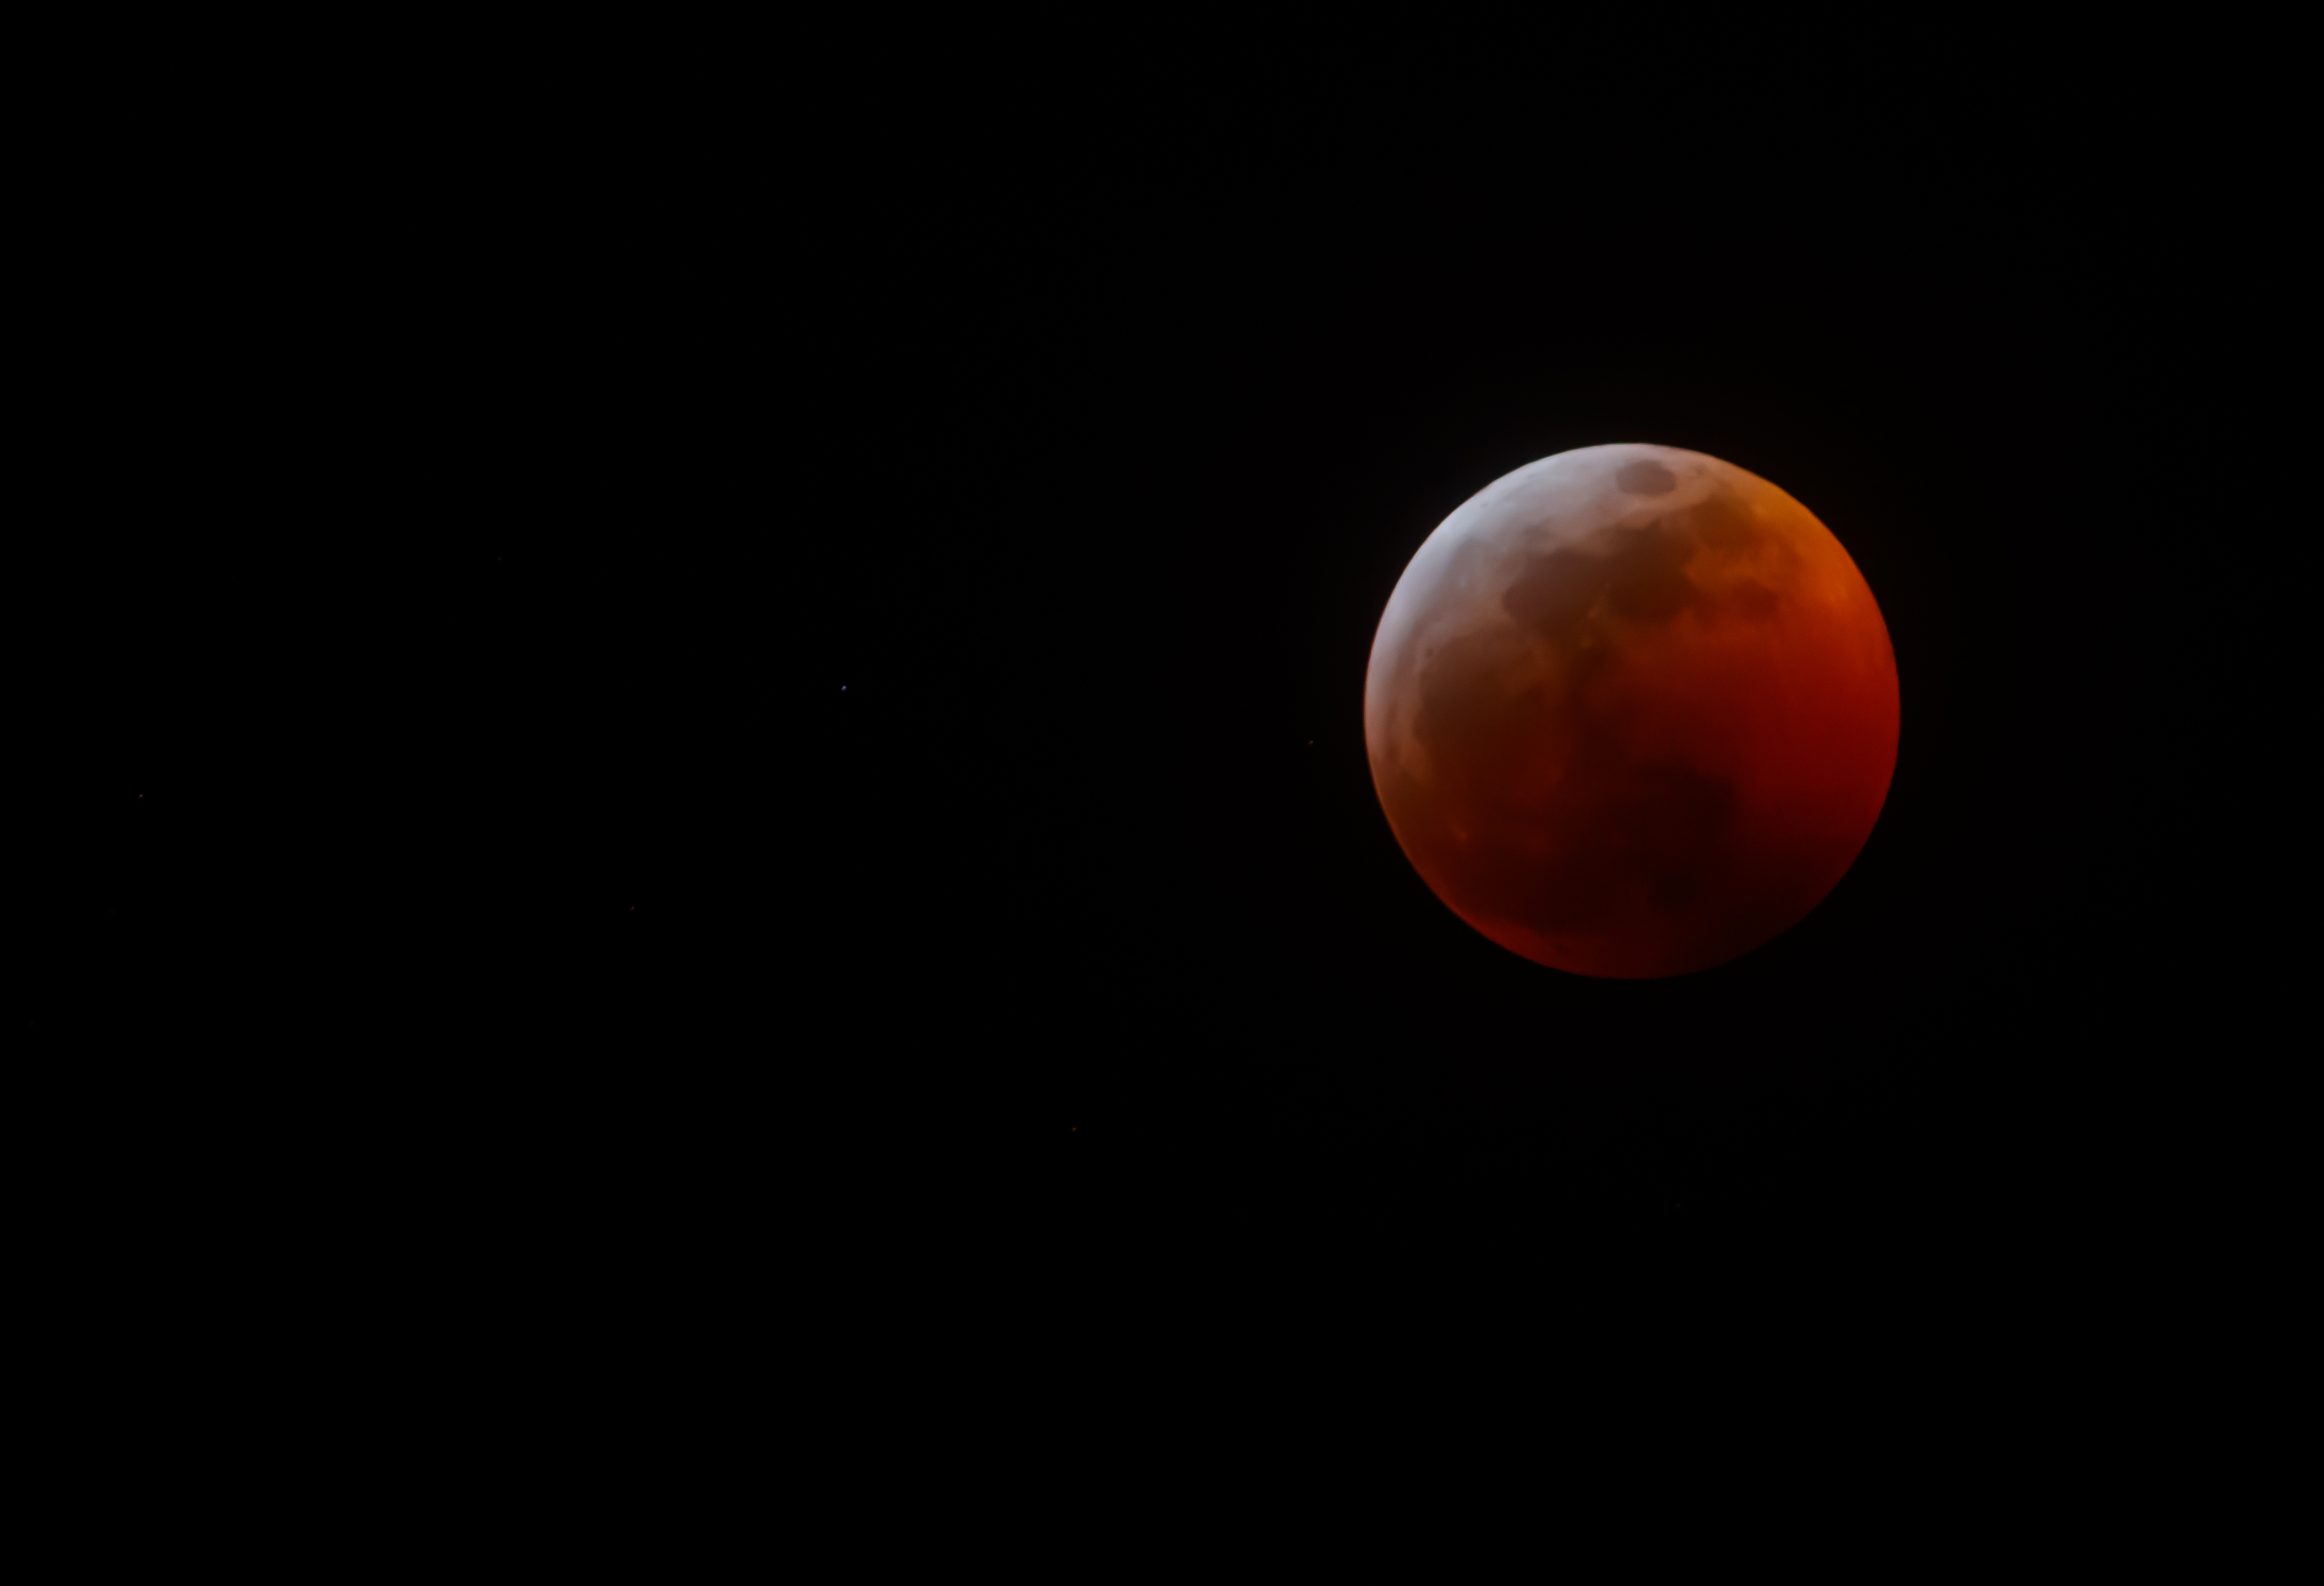 blood moon eclipse january 2019 - photo #15